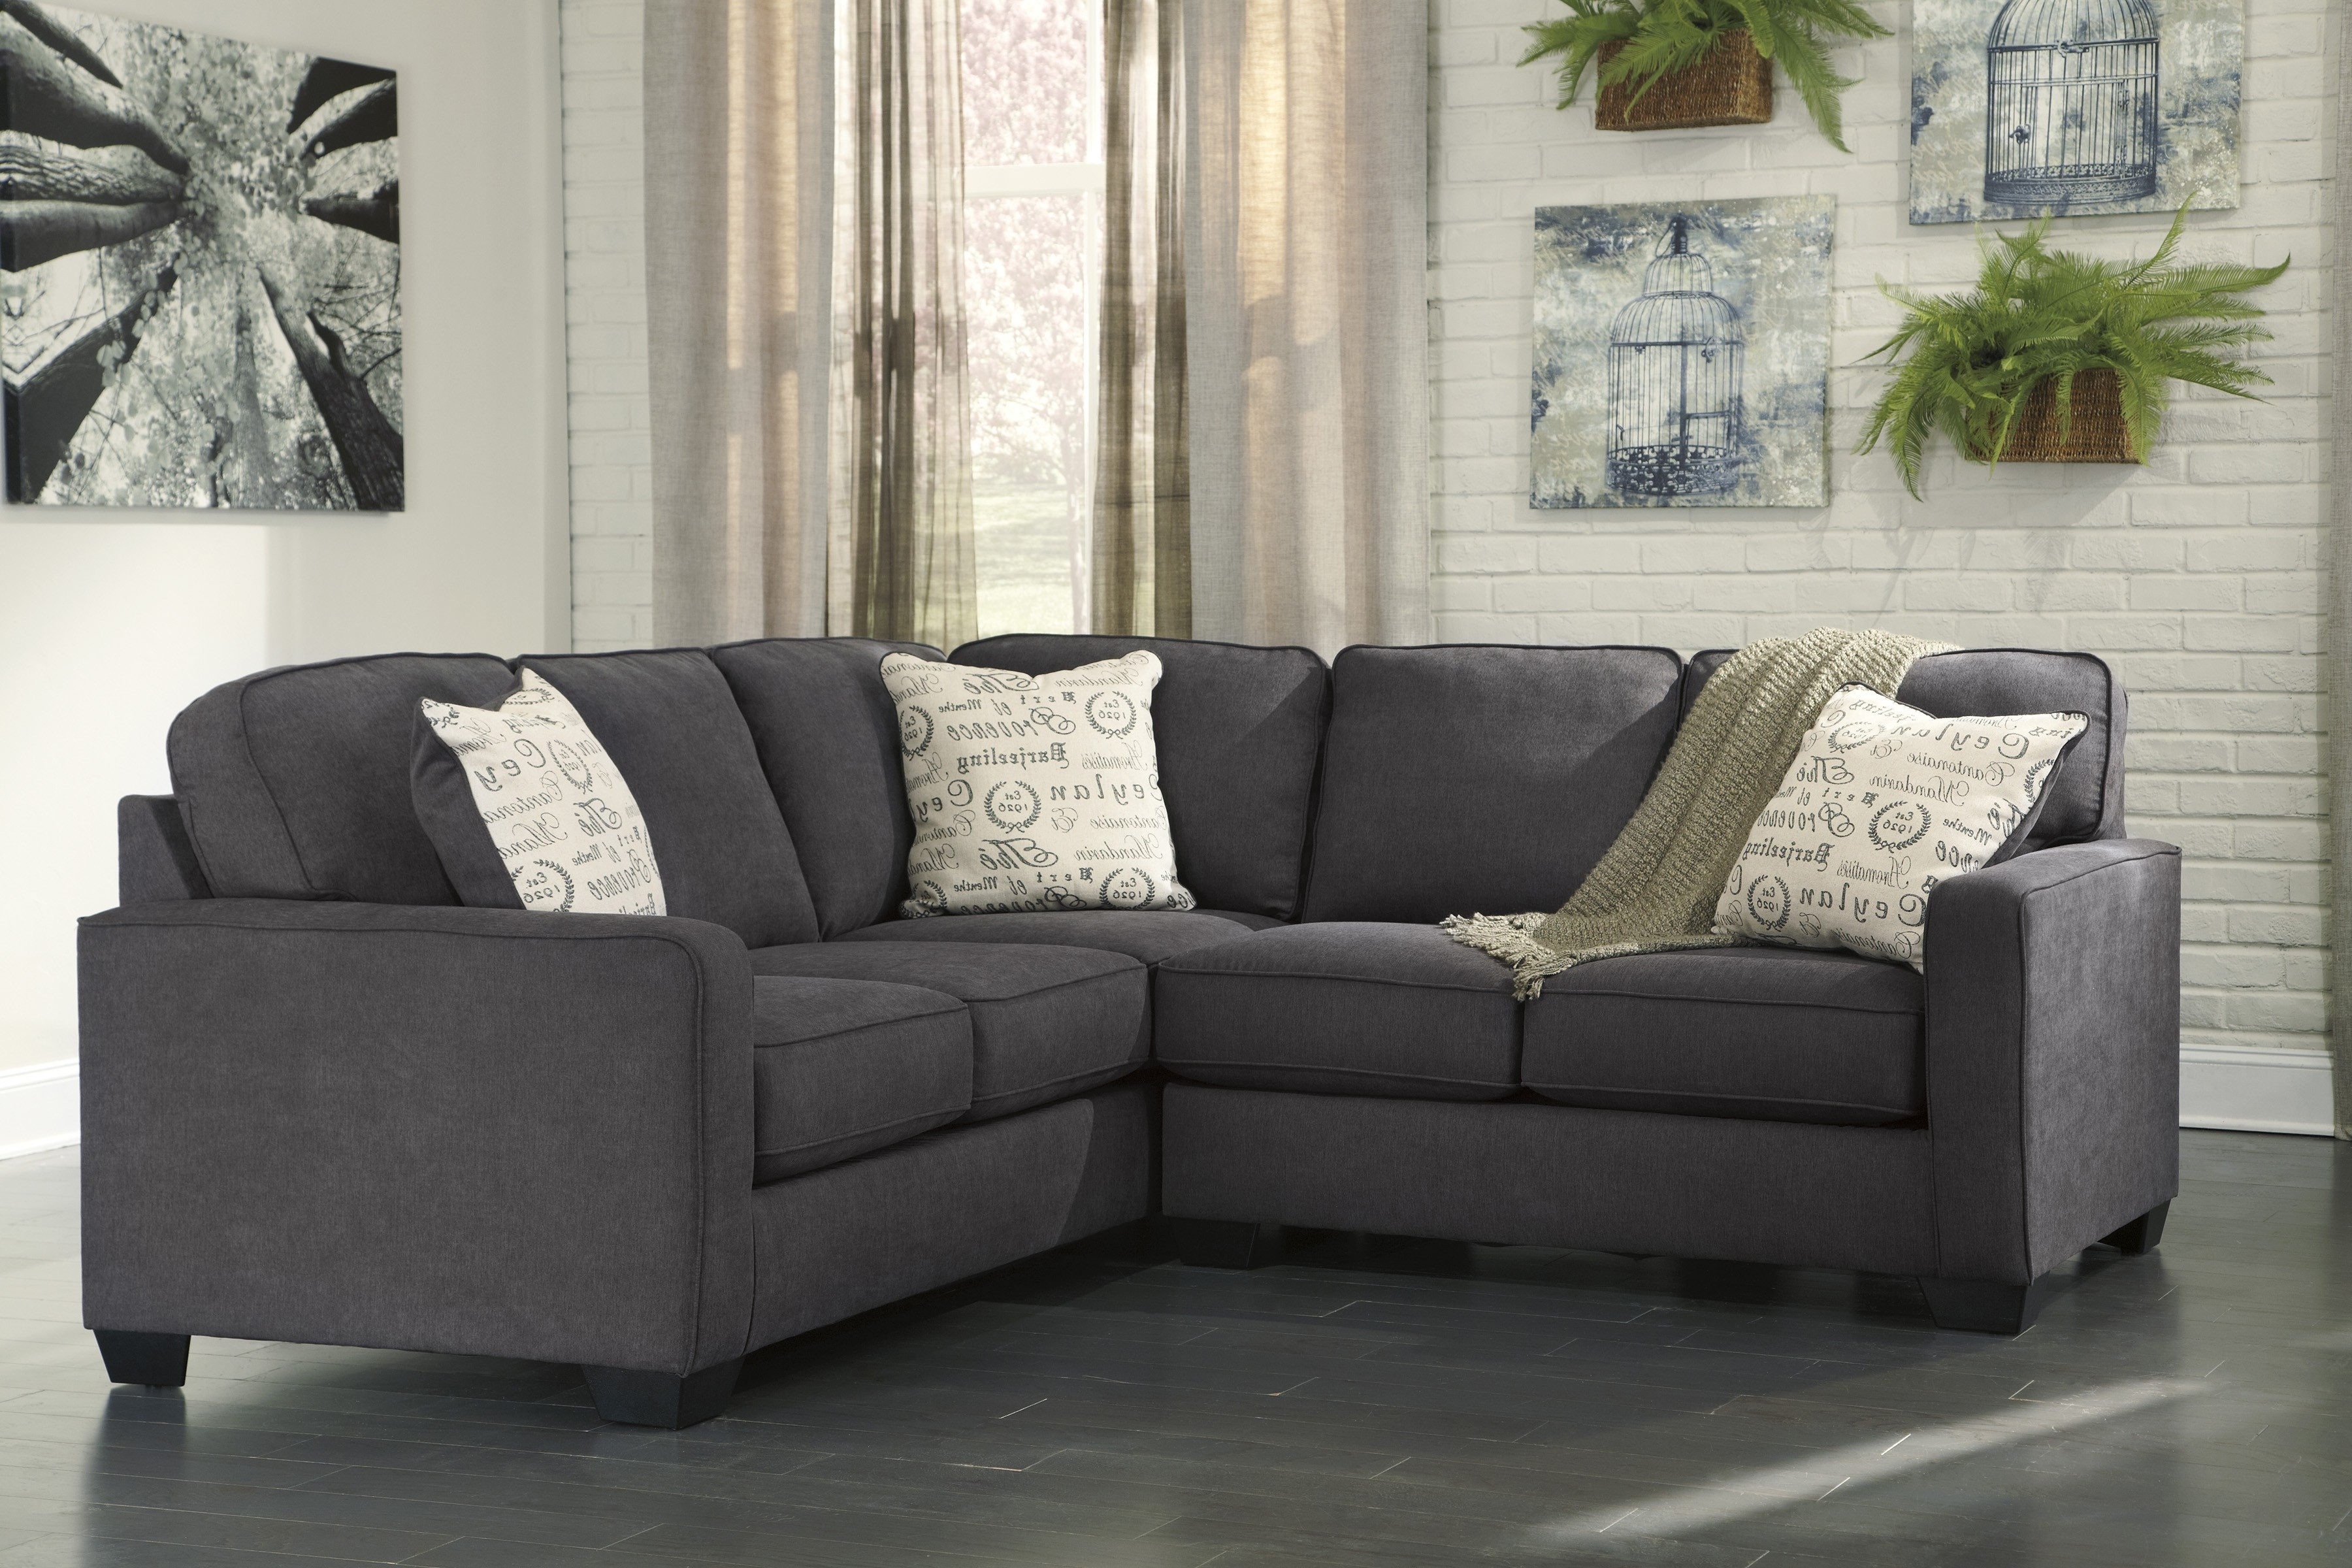 Alenya Charcoal Piece Sectional Sofa For Furnitureusa Raf Love Tures For Tess 2 Piece Power Reclining Sectionals With Laf Chaise (View 12 of 25)